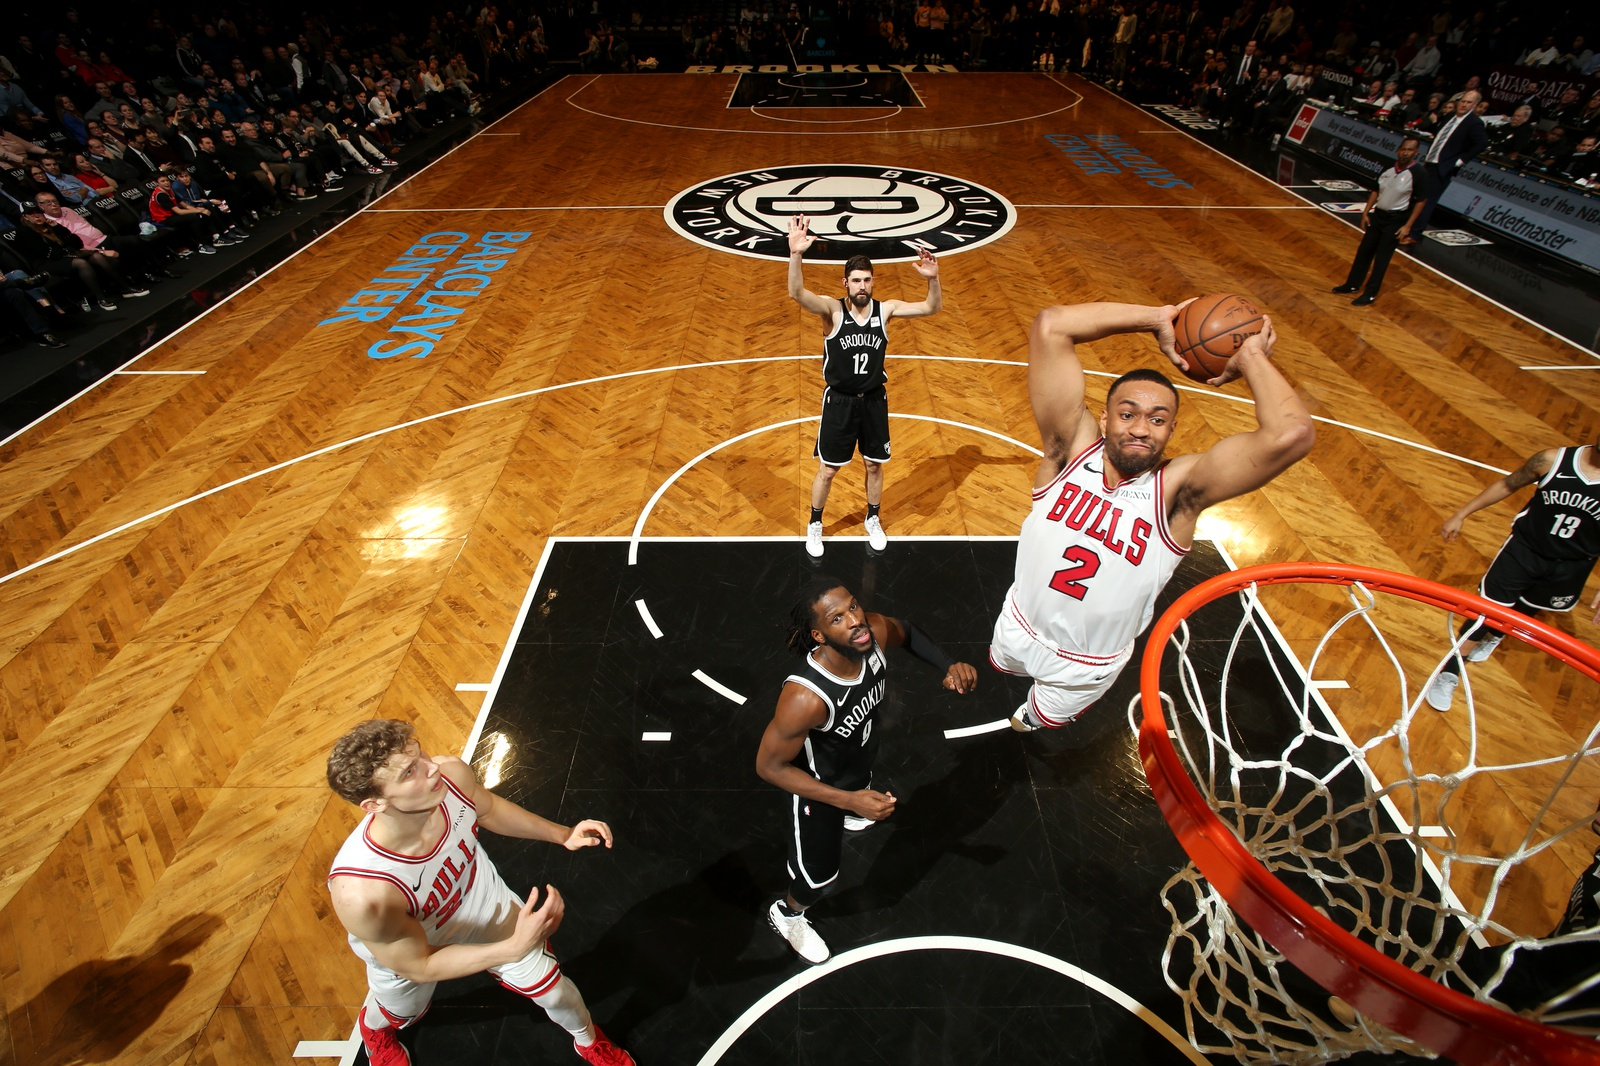 Jabari Parker #2 of the Chicago Bulls dunks the ball against the Brooklyn Nets on January 29, 2019 at Barclays Center in Brooklyn, New York.